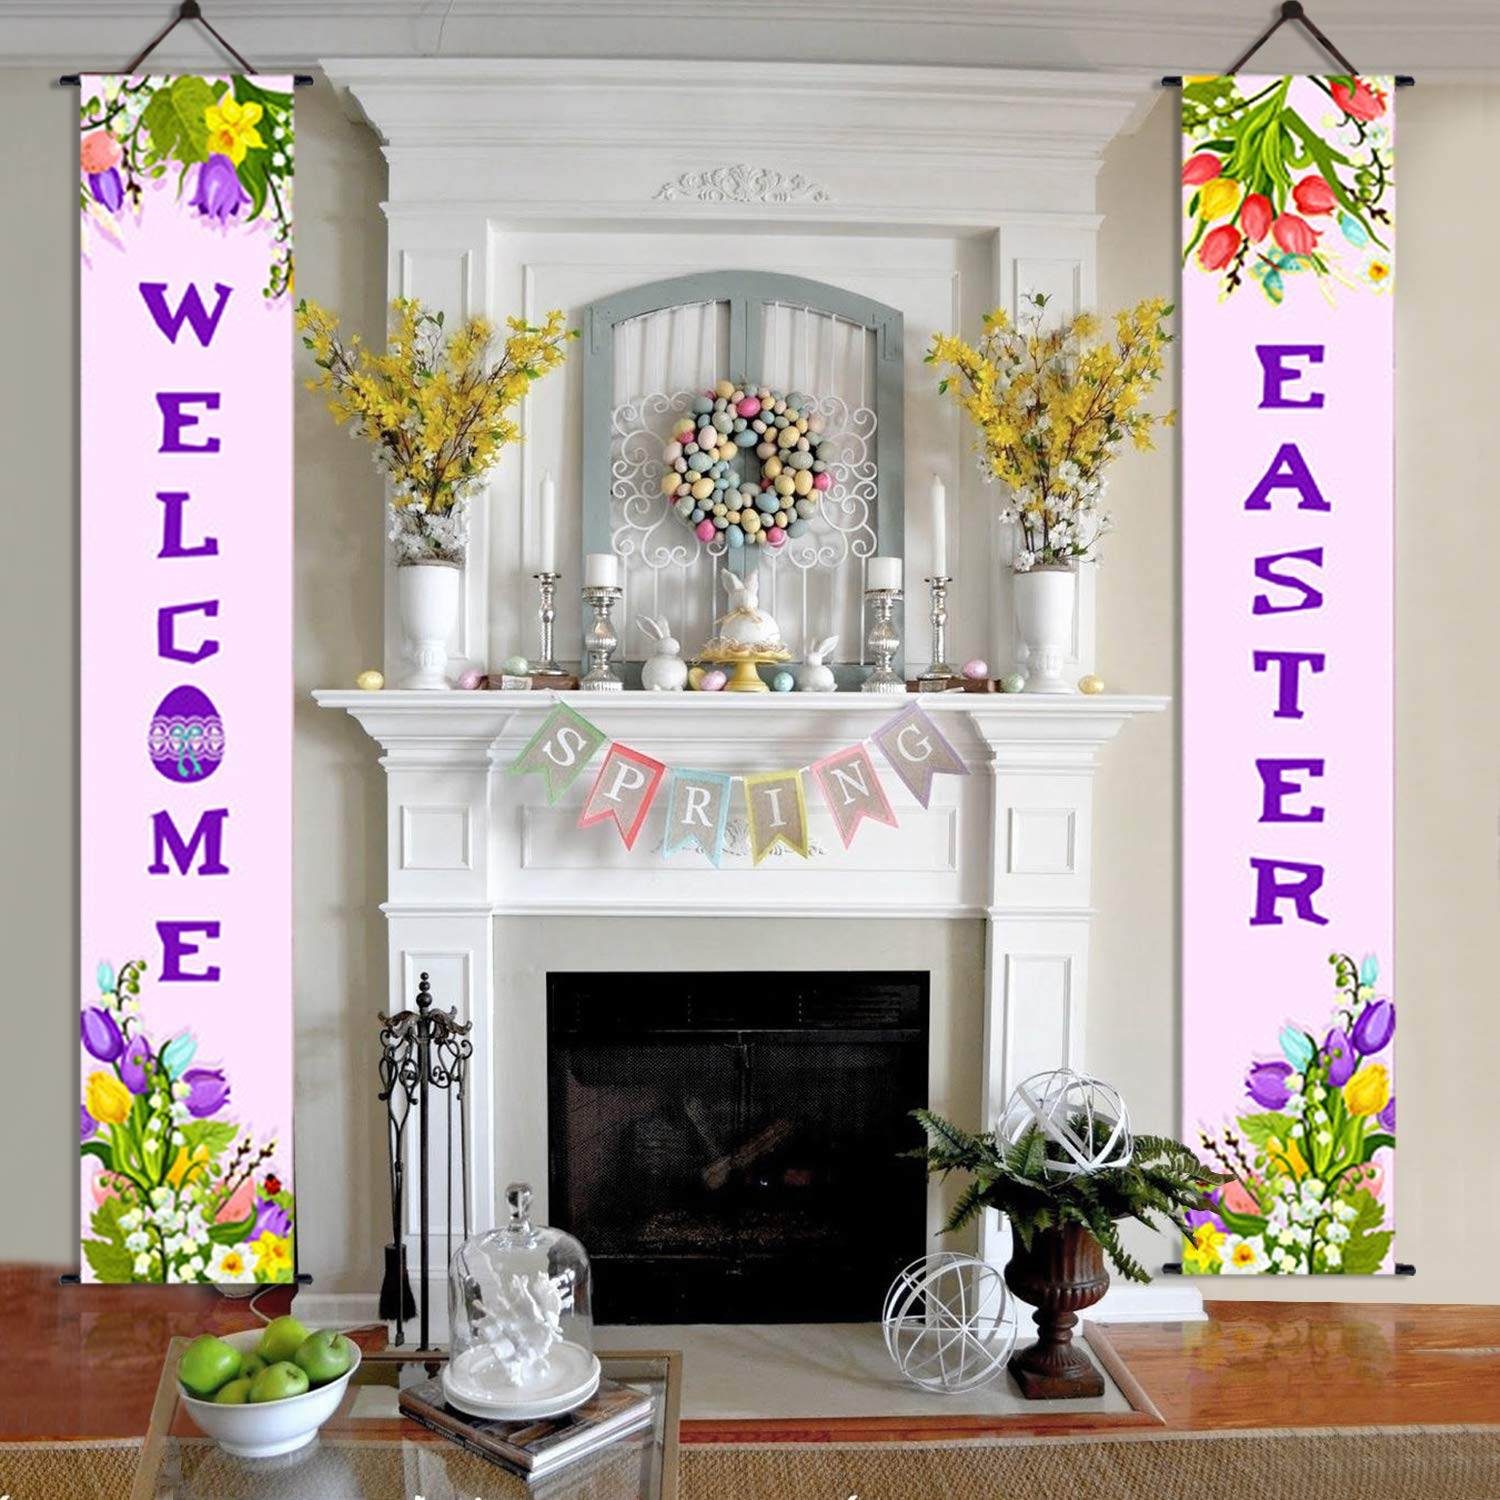 71x12 Inch Easter Decorations Outdoor Indoor Welcome Easter Hanging Banner Sign for Easter Home Outdoor Wall Front Door Decor Party Favor Ornament 2 Pack Easter Porch Sign